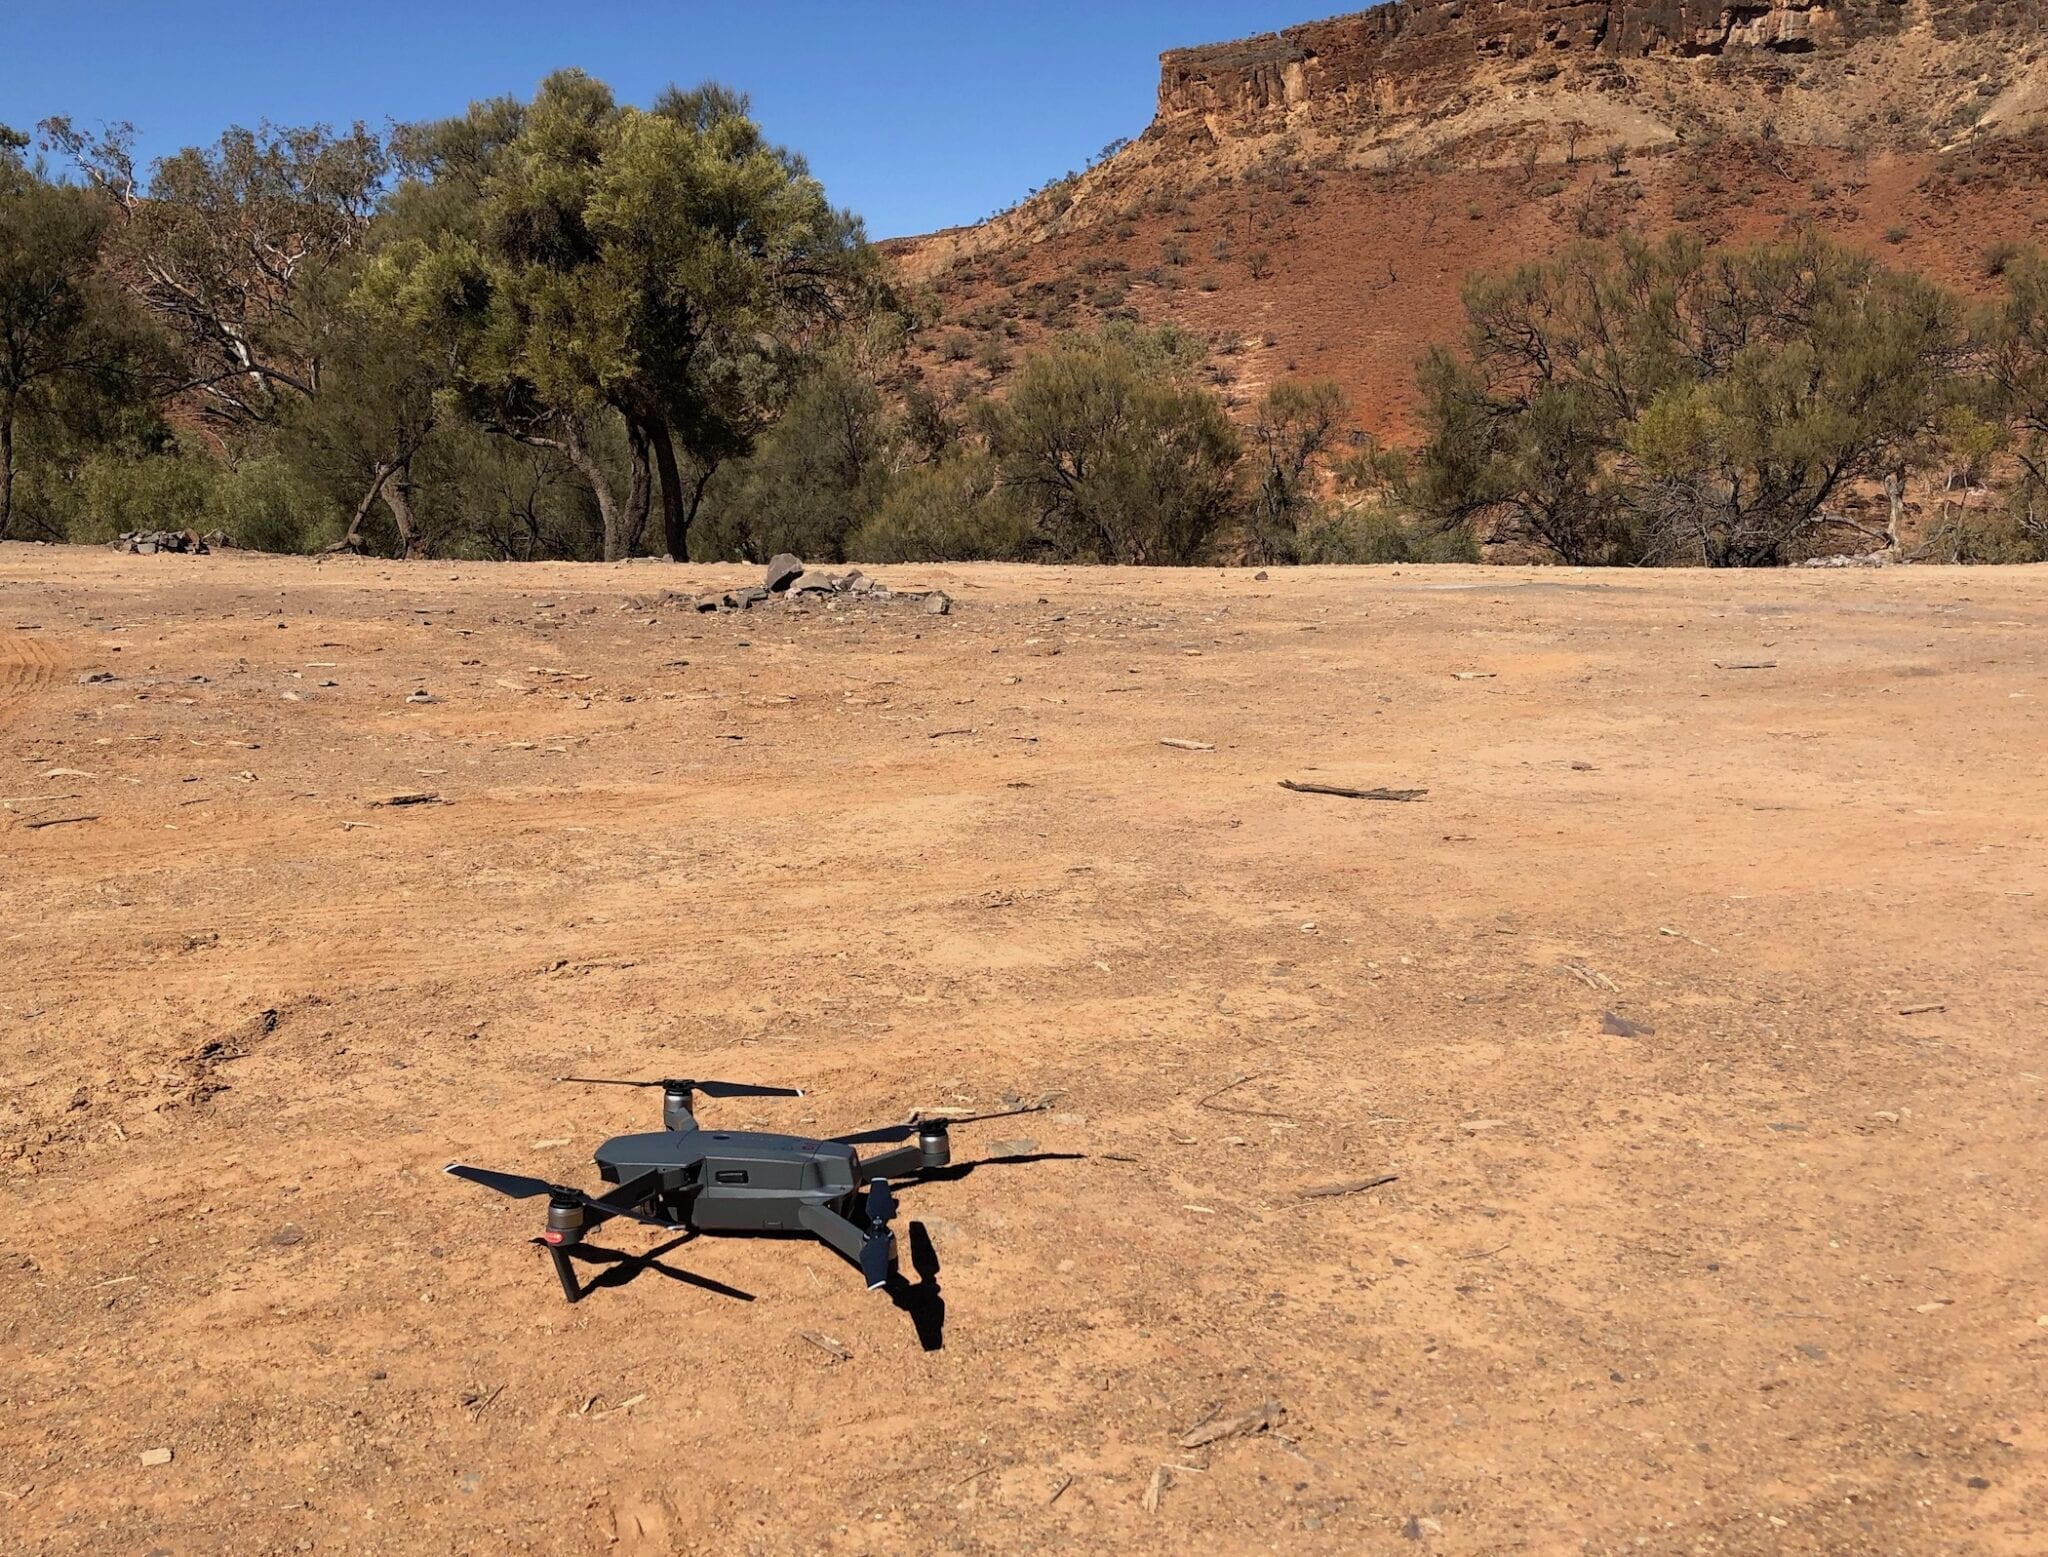 Ready to fly our DJI Mavic Pro for the first time.